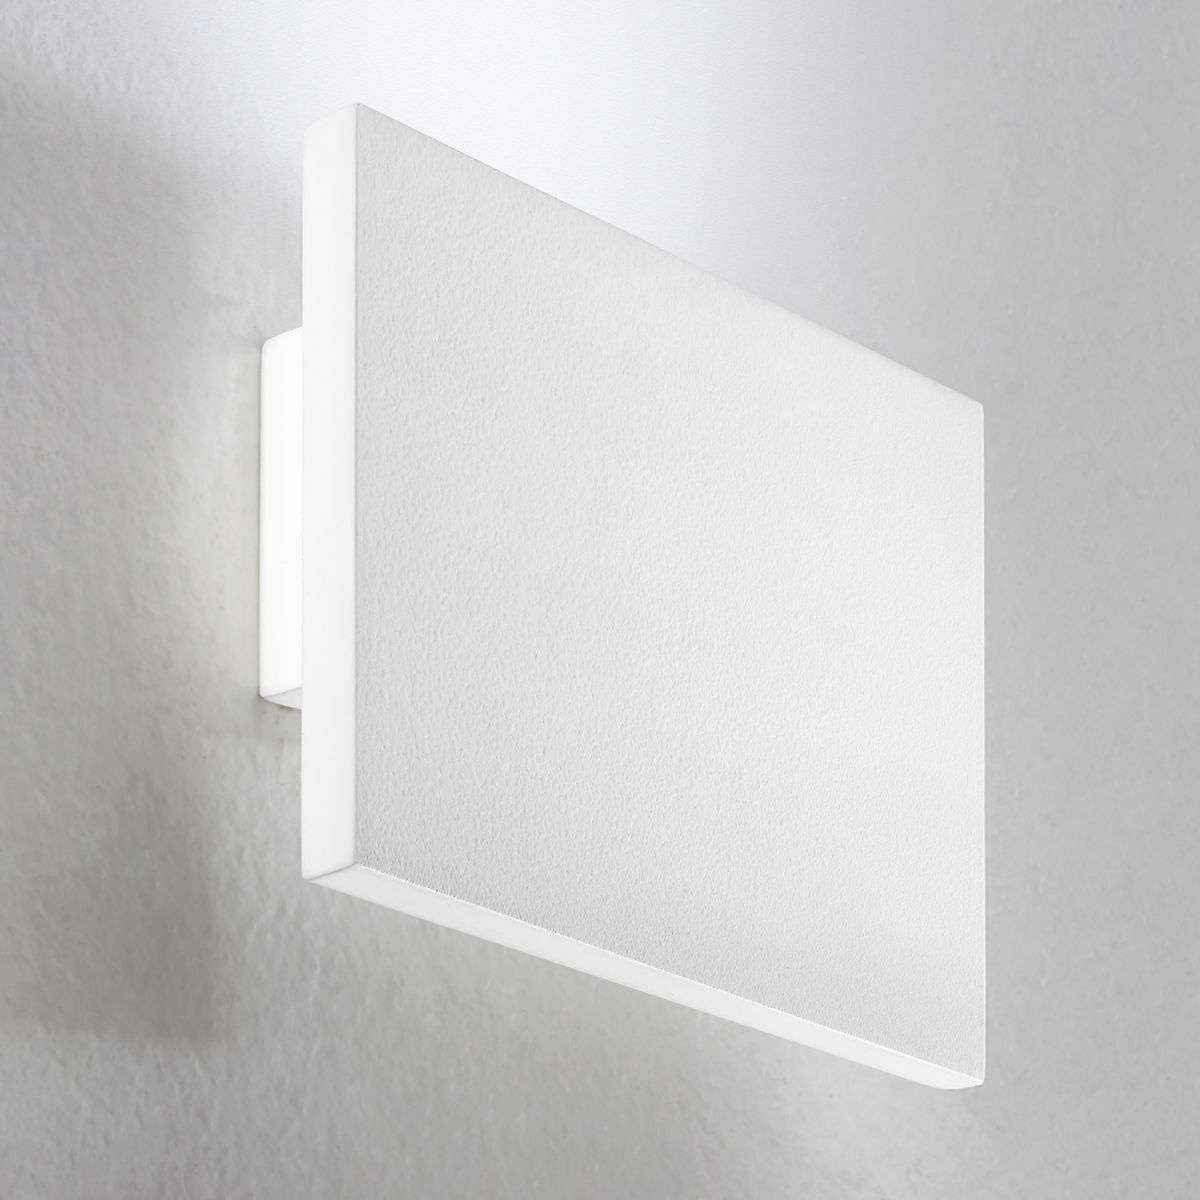 Wall Pictures Light Up : Up-down LED wall light Tratto, 16 W, white Lights.co.uk